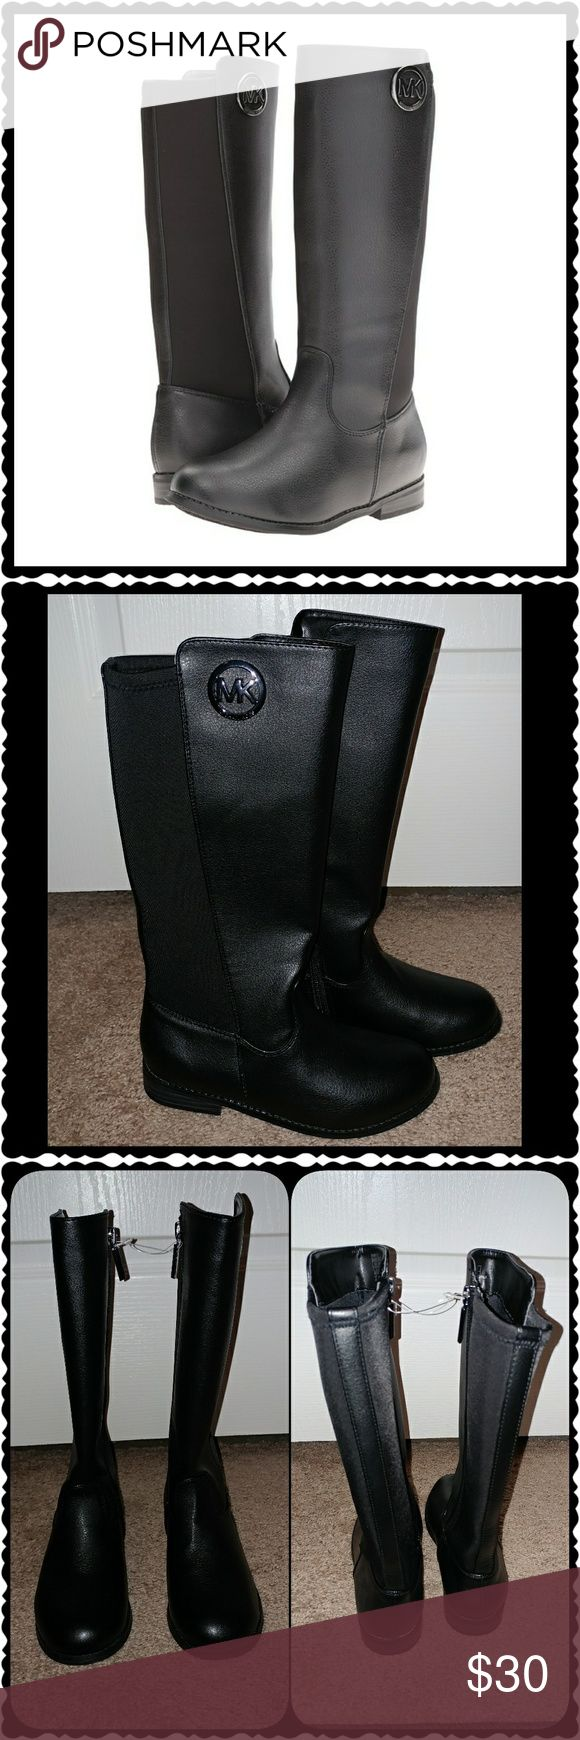 🚨FINAL PRICE⬇ 🌸Michael Korls Girls Riding Boots: NWOT. (Still attached by plastic tag piece, shown in photo).  Black Michael Kors Girls Boots. Perfect condition. Never Worn.   Final price drop is firm. Bundle & Save! ** Next Day Shipping ** MICHAEL Michael Kors Shoes Boots